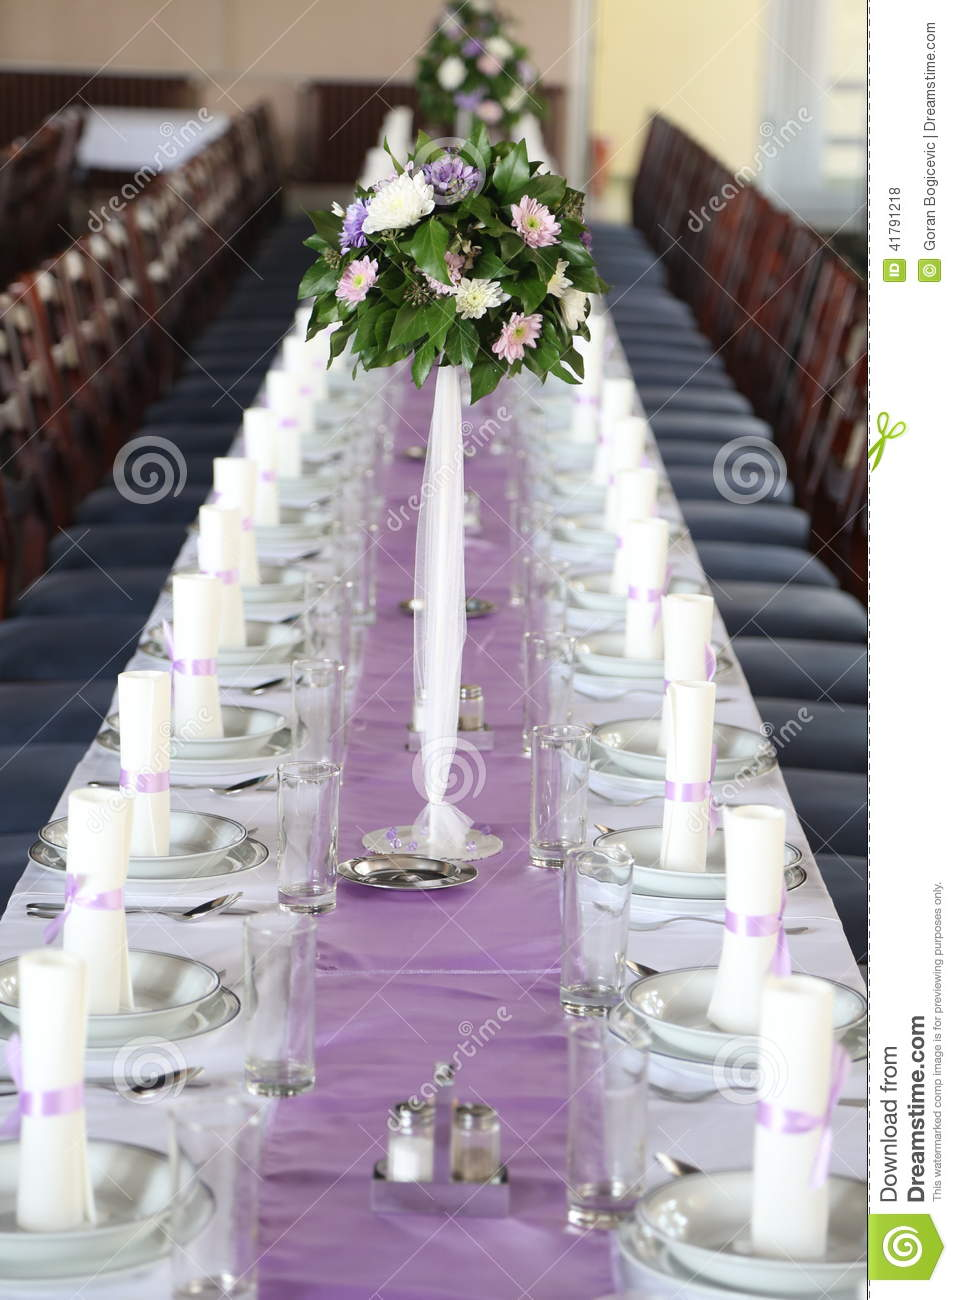 Wedding decorations zone white table with bouquet and for Decoration zone